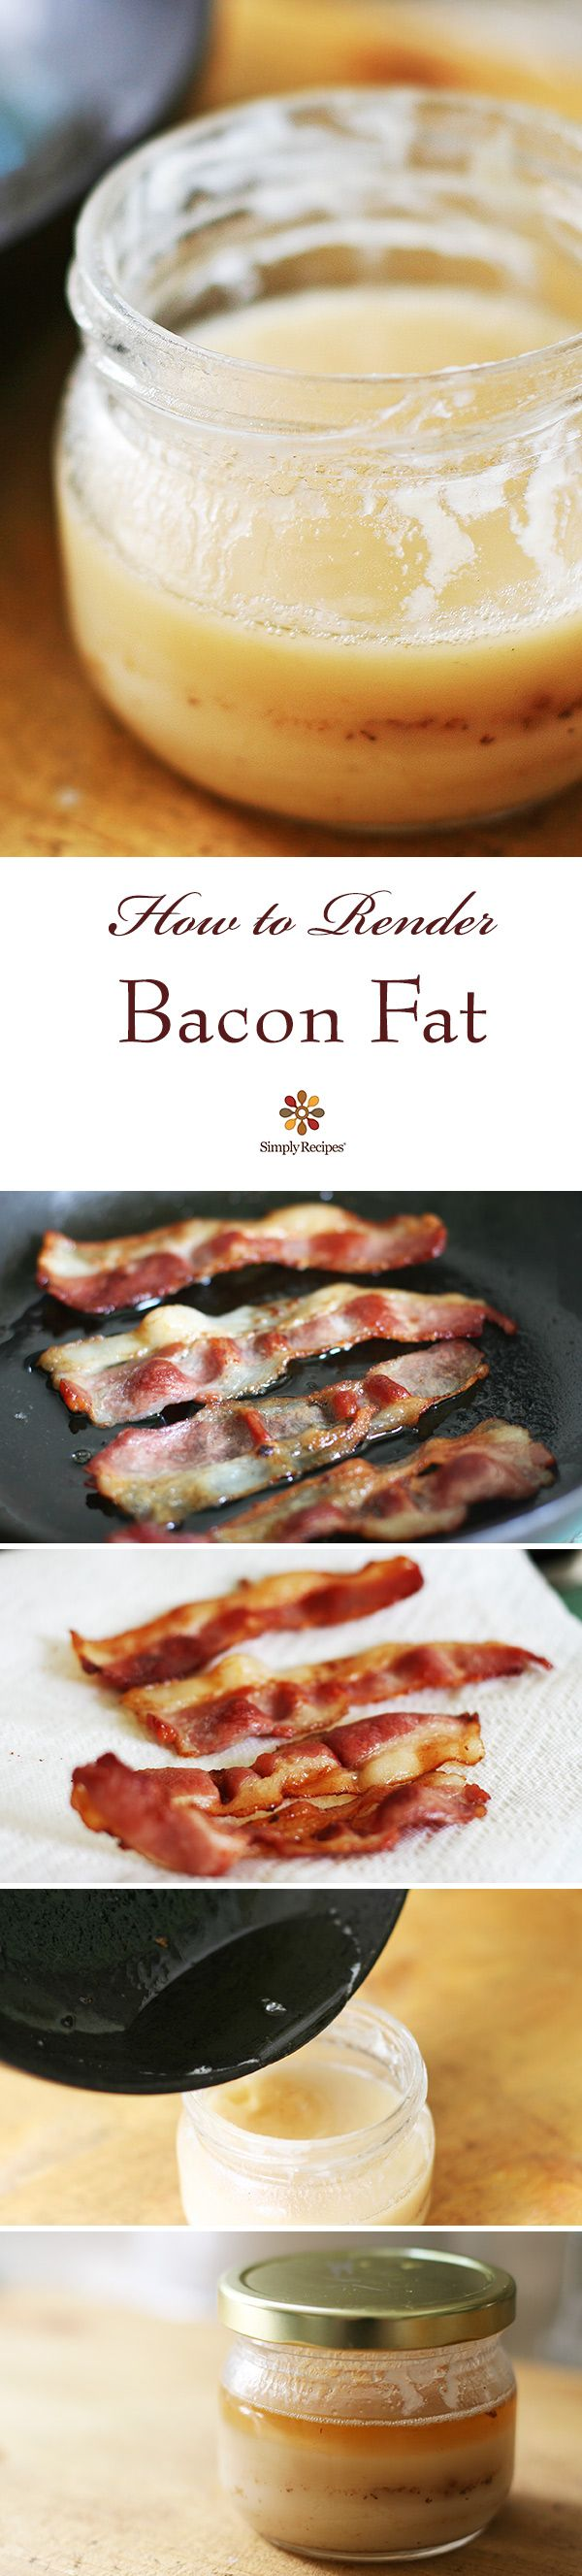 Rendering Bacon Fat ~ A guide for how to render bacon fat for use in cooking. ~ SimplyRecipes.com